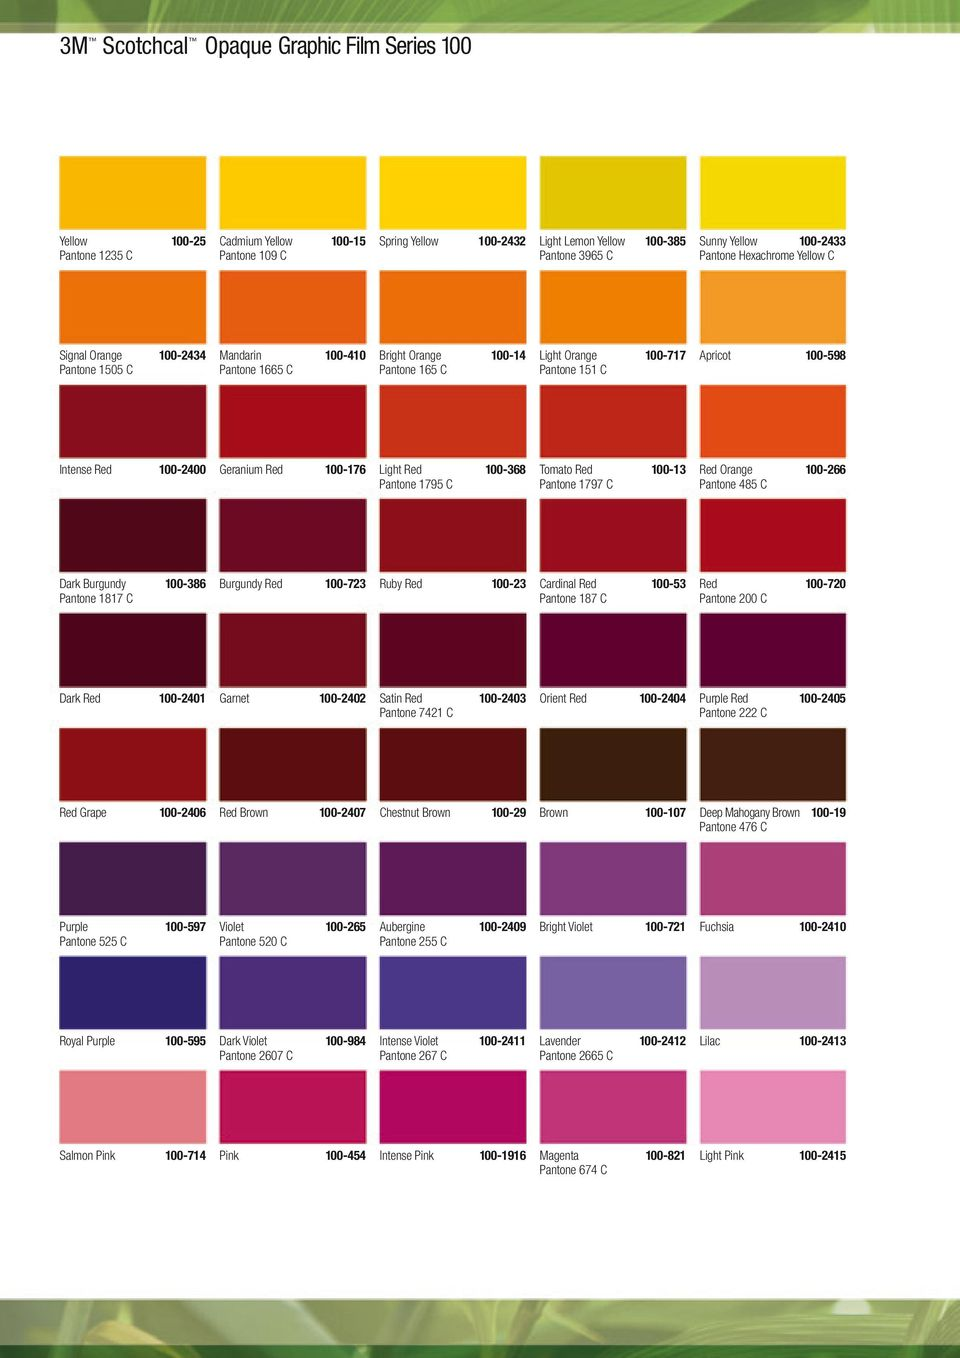 100-2400 Geranium Red 100-176 Light Red 100-368 Pantone 1795 C Tomato Red 100-13 Pantone 1797 C Red Orange 100-266 Pantone 485 C Dark Burgundy 100-386 Pantone 1817 C Burgundy Red 100-723 Ruby Red